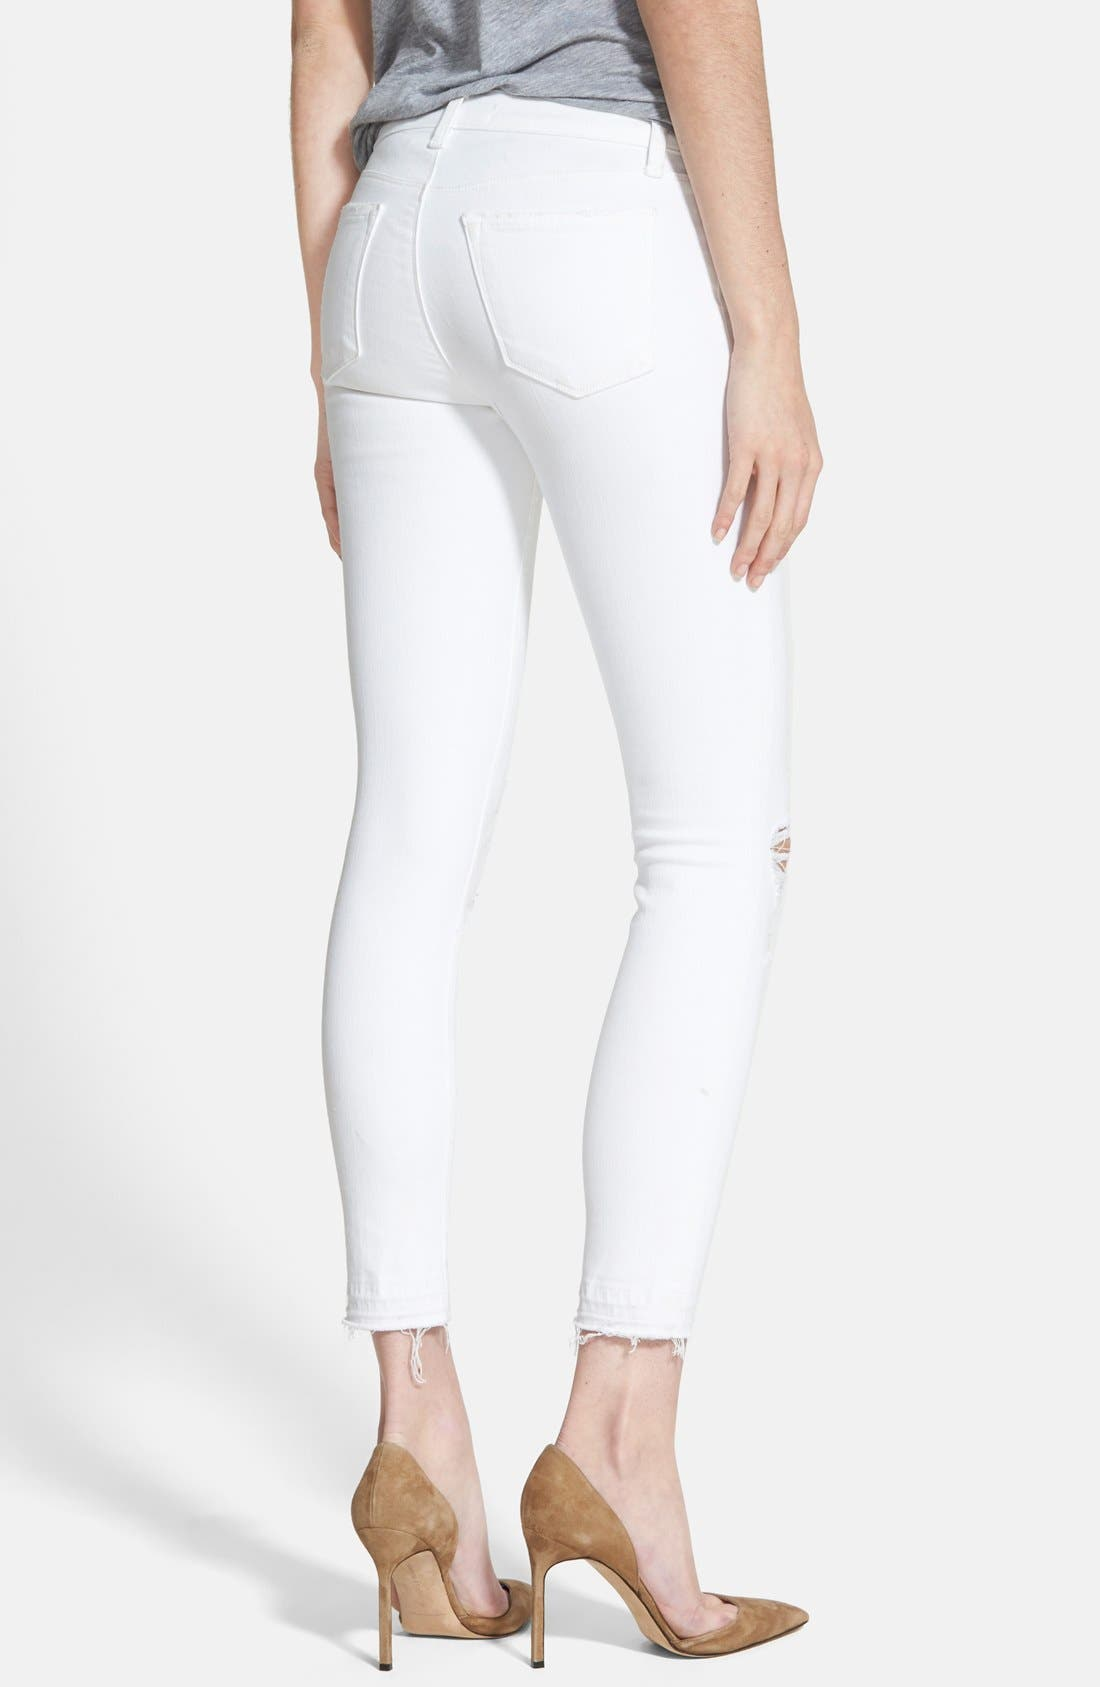 J BRAND, 9326 Low Rise Crop Skinny Jeans, Alternate thumbnail 8, color, DEMENTED WHITE DESTRUCTED